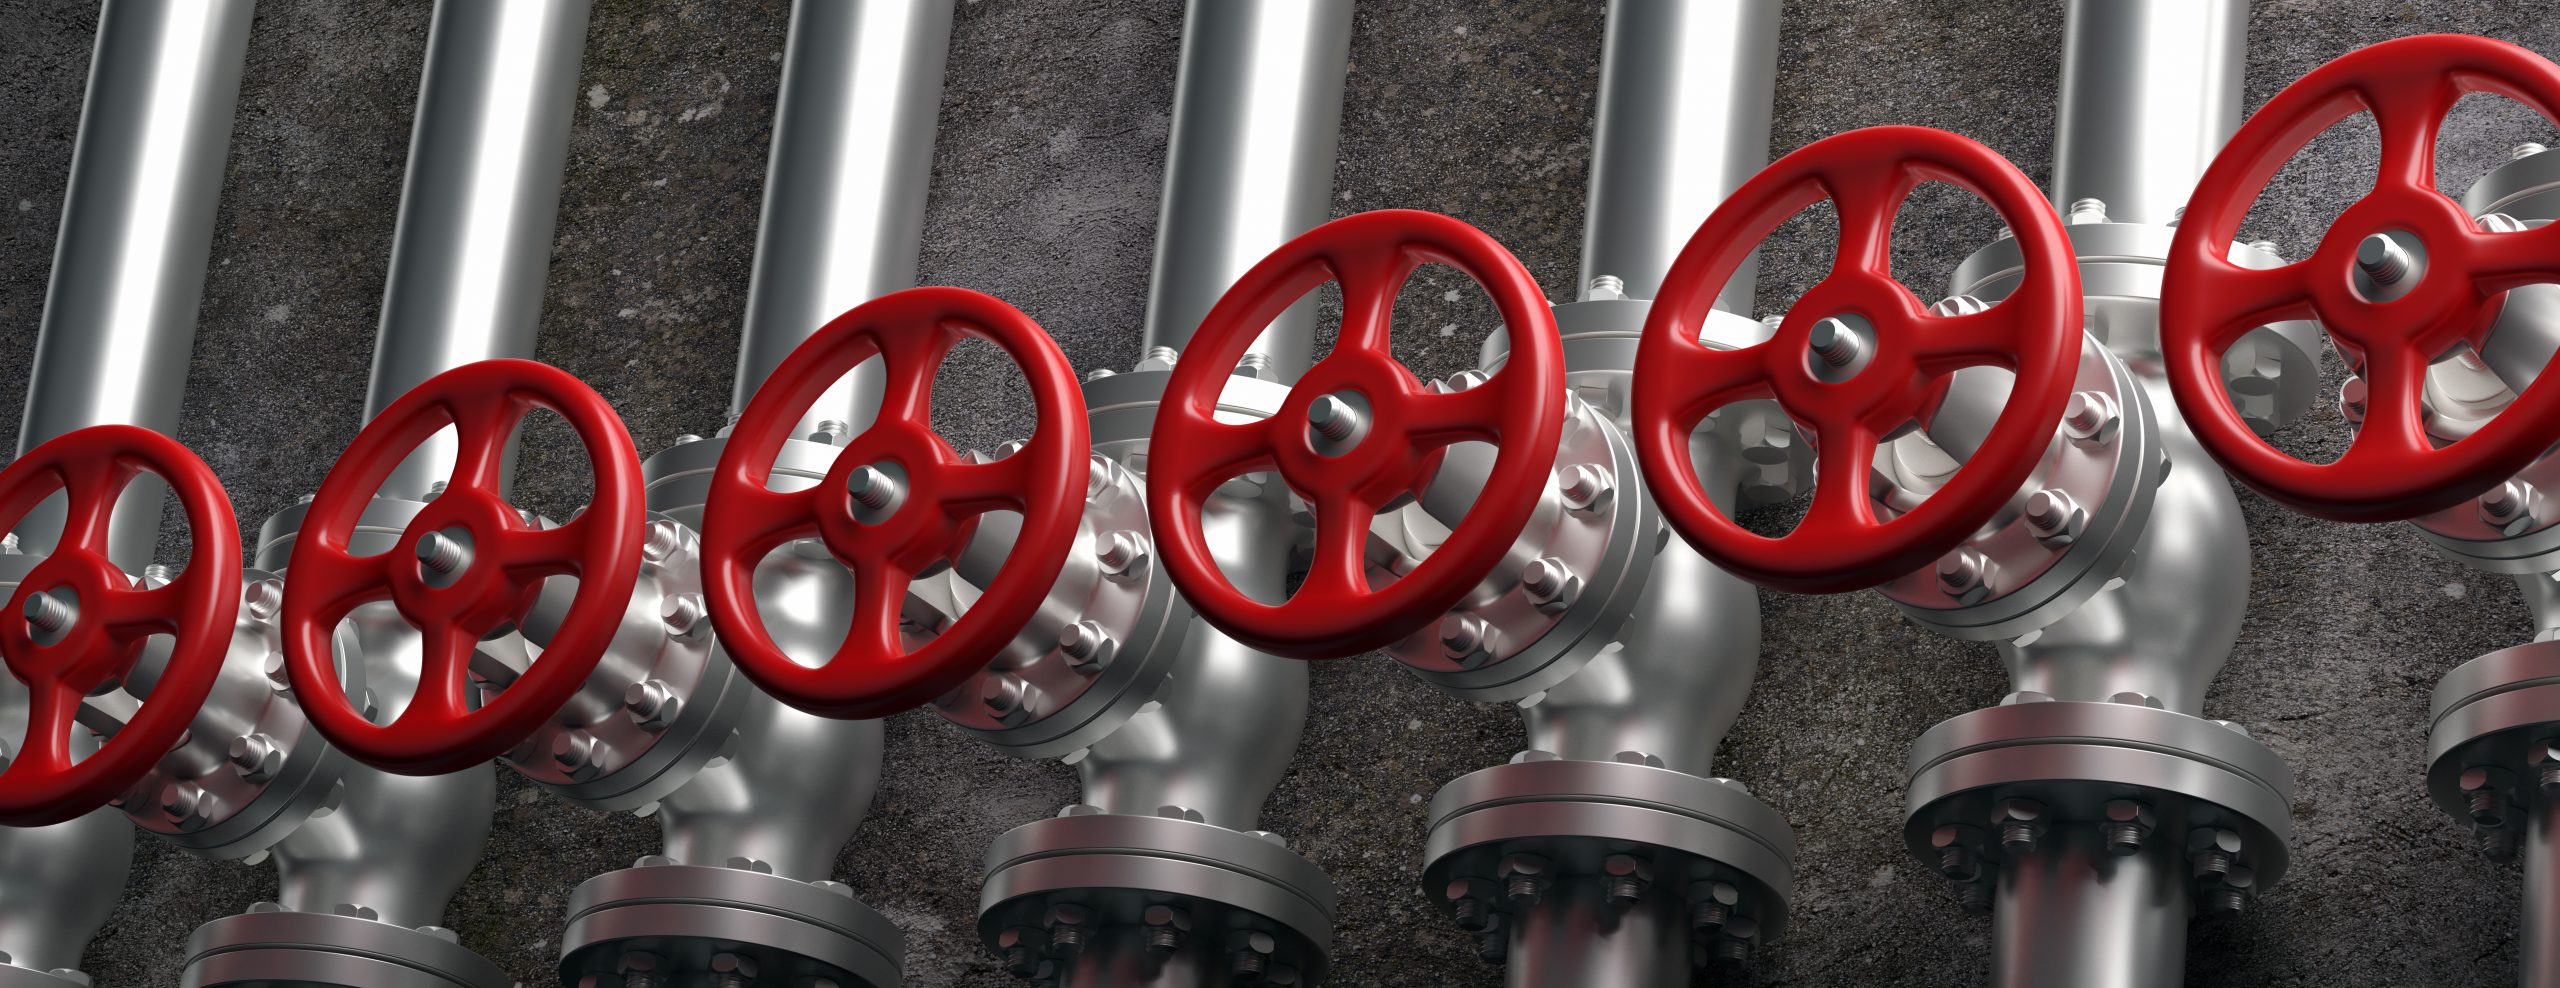 indsutrial pipelines and valves with red wheels on